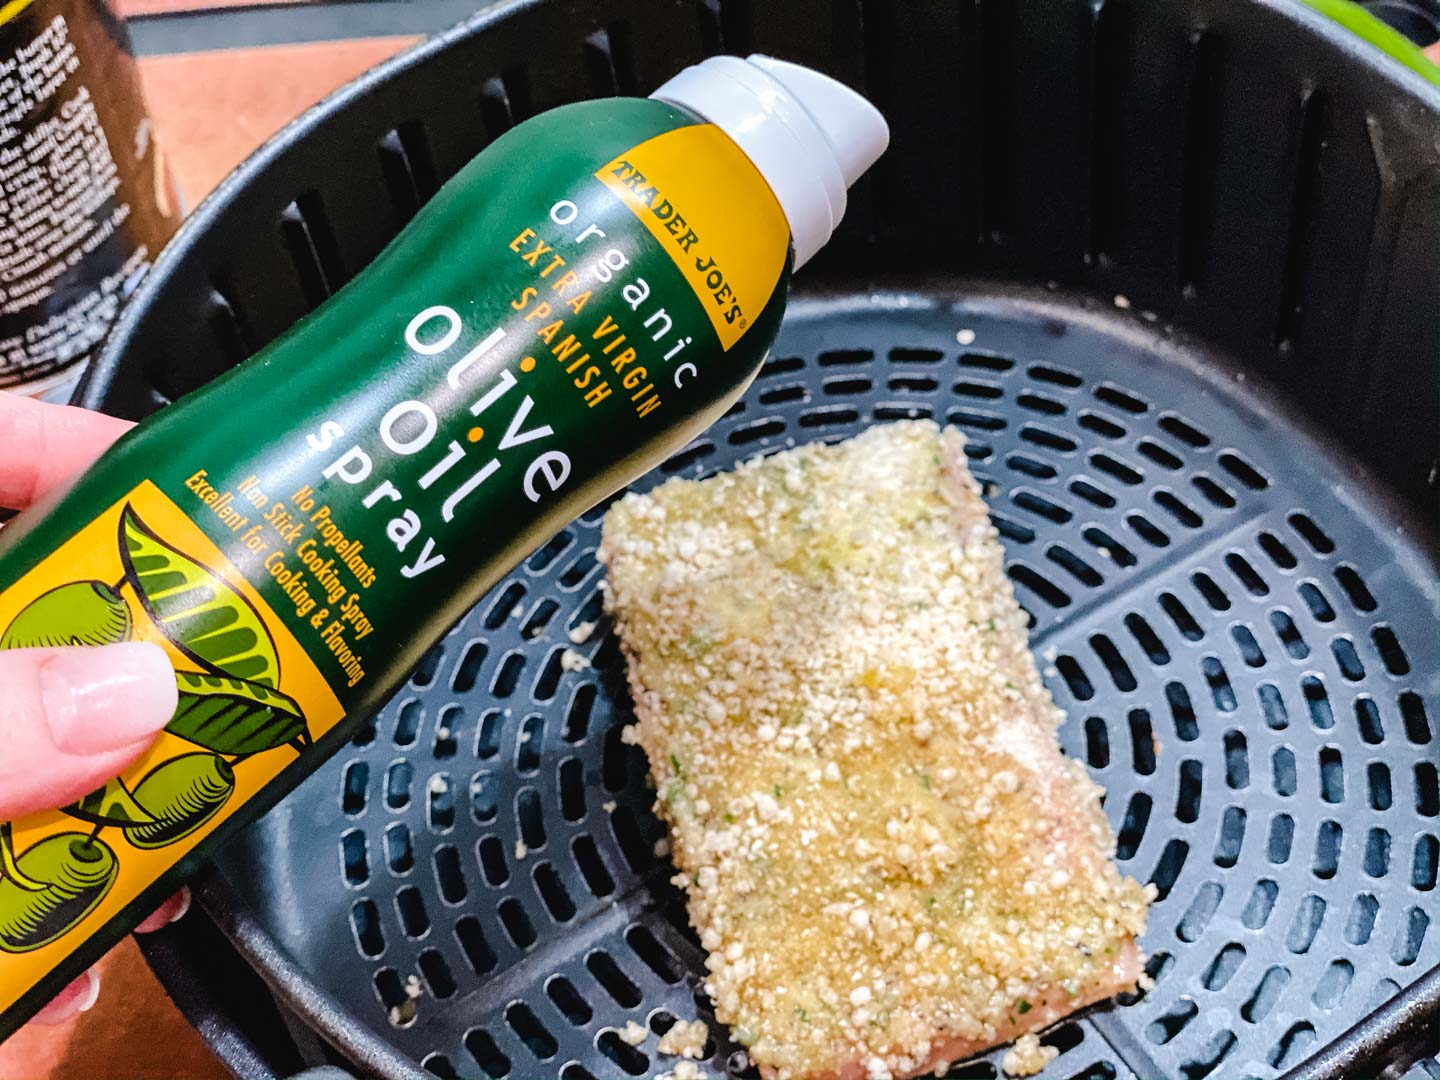 Crusted salmon in an air fryer with a bottle of olive oil spray.